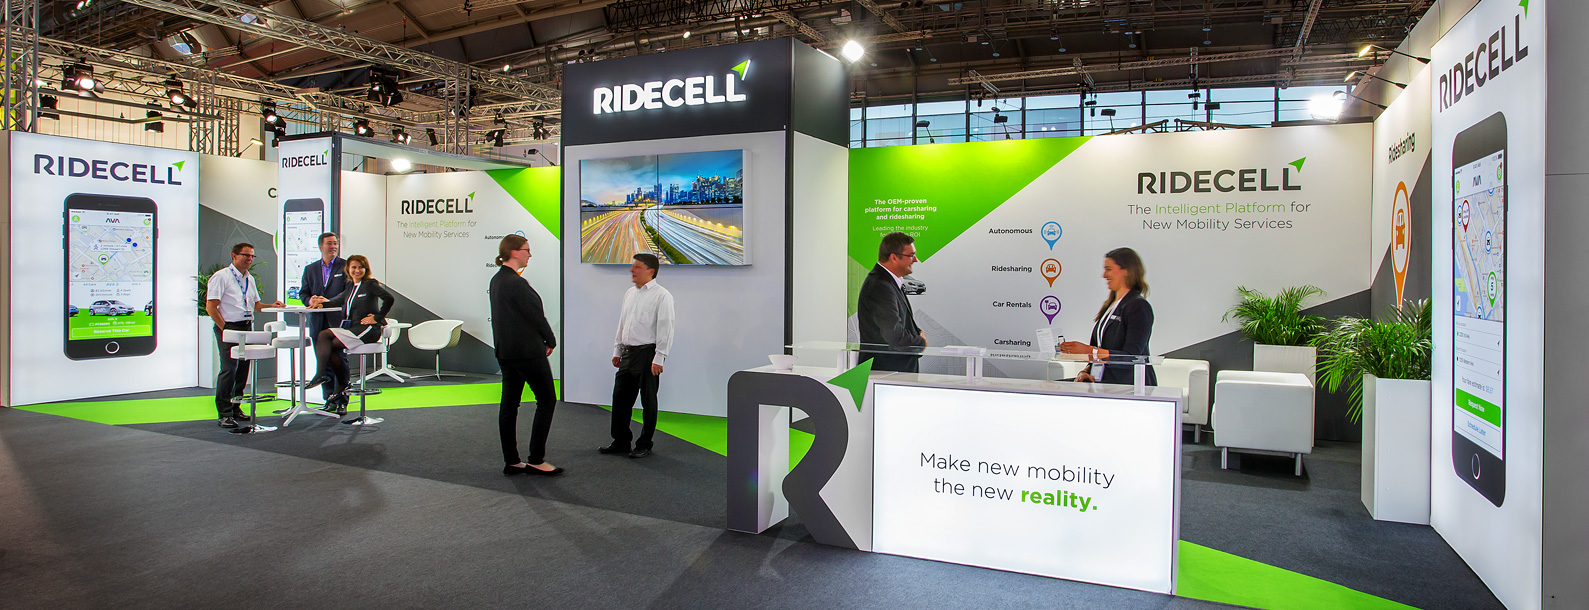 Ridecell Messestand